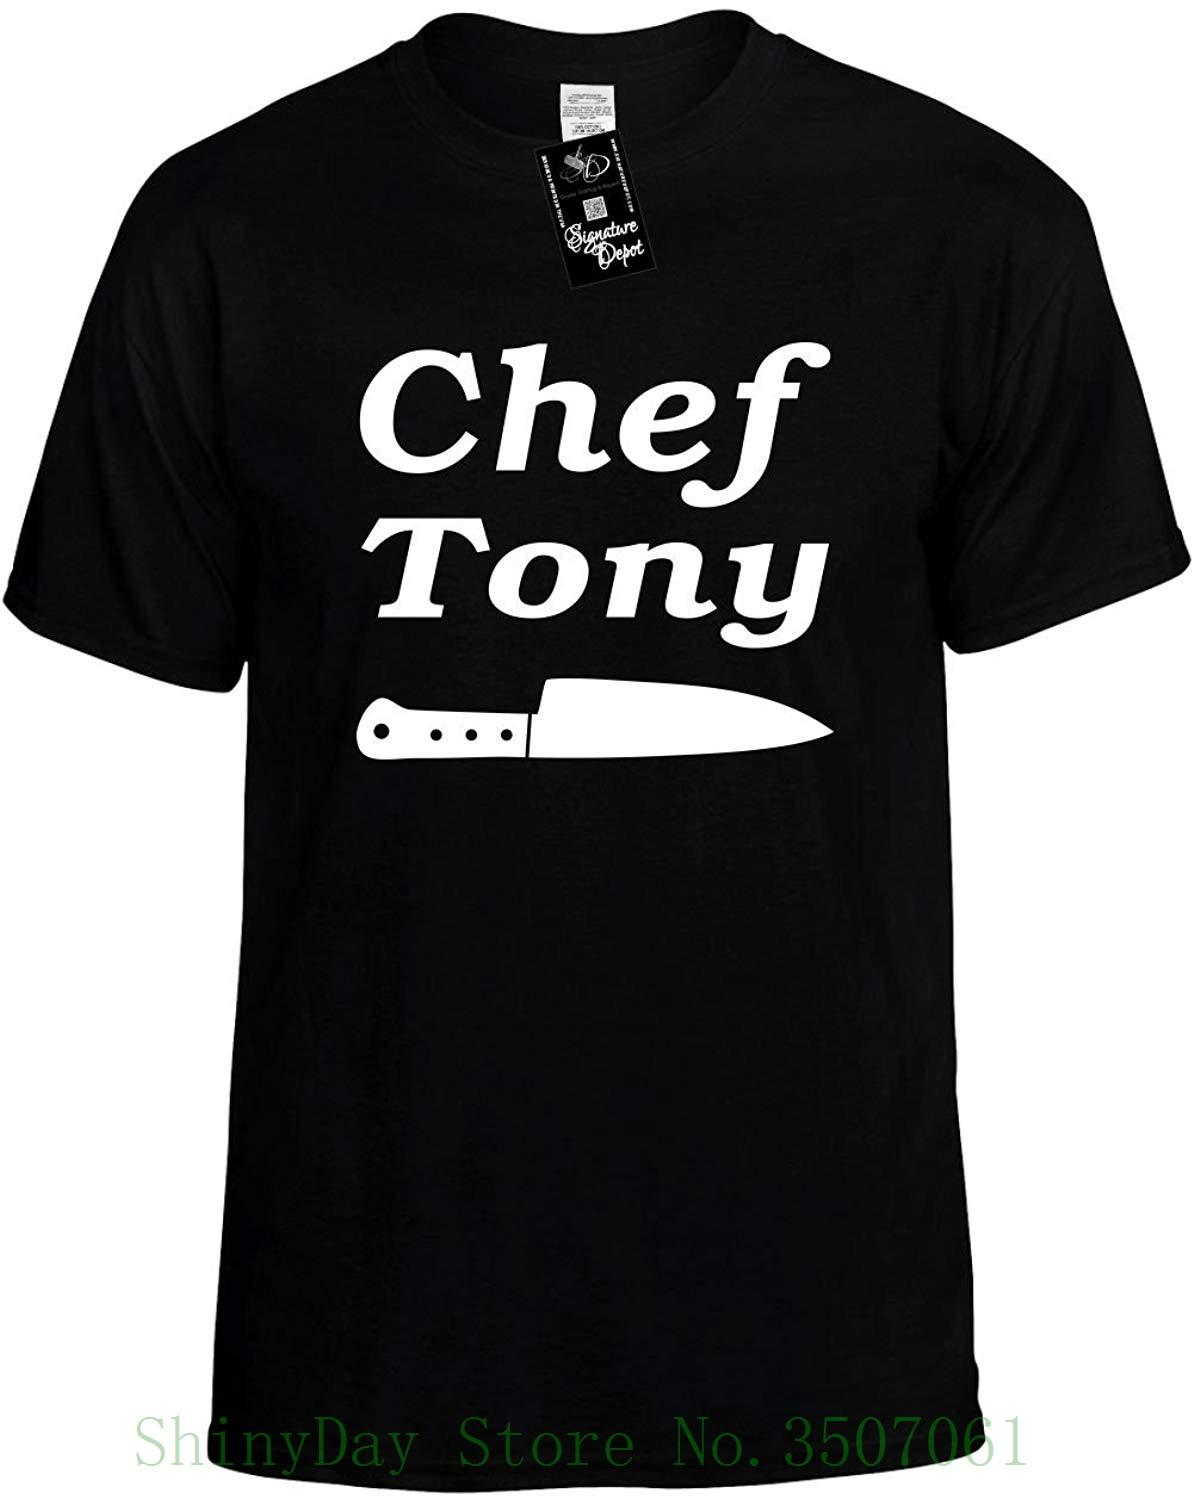 5d8418cf3 Mens Funny T Shirt Chef Tony With Knife Food Cook Unisex Tee Cotton Low  Price Top Tee For Teen Girls Funny Printed Shirts Cool Tee Shirts Designs  From ...